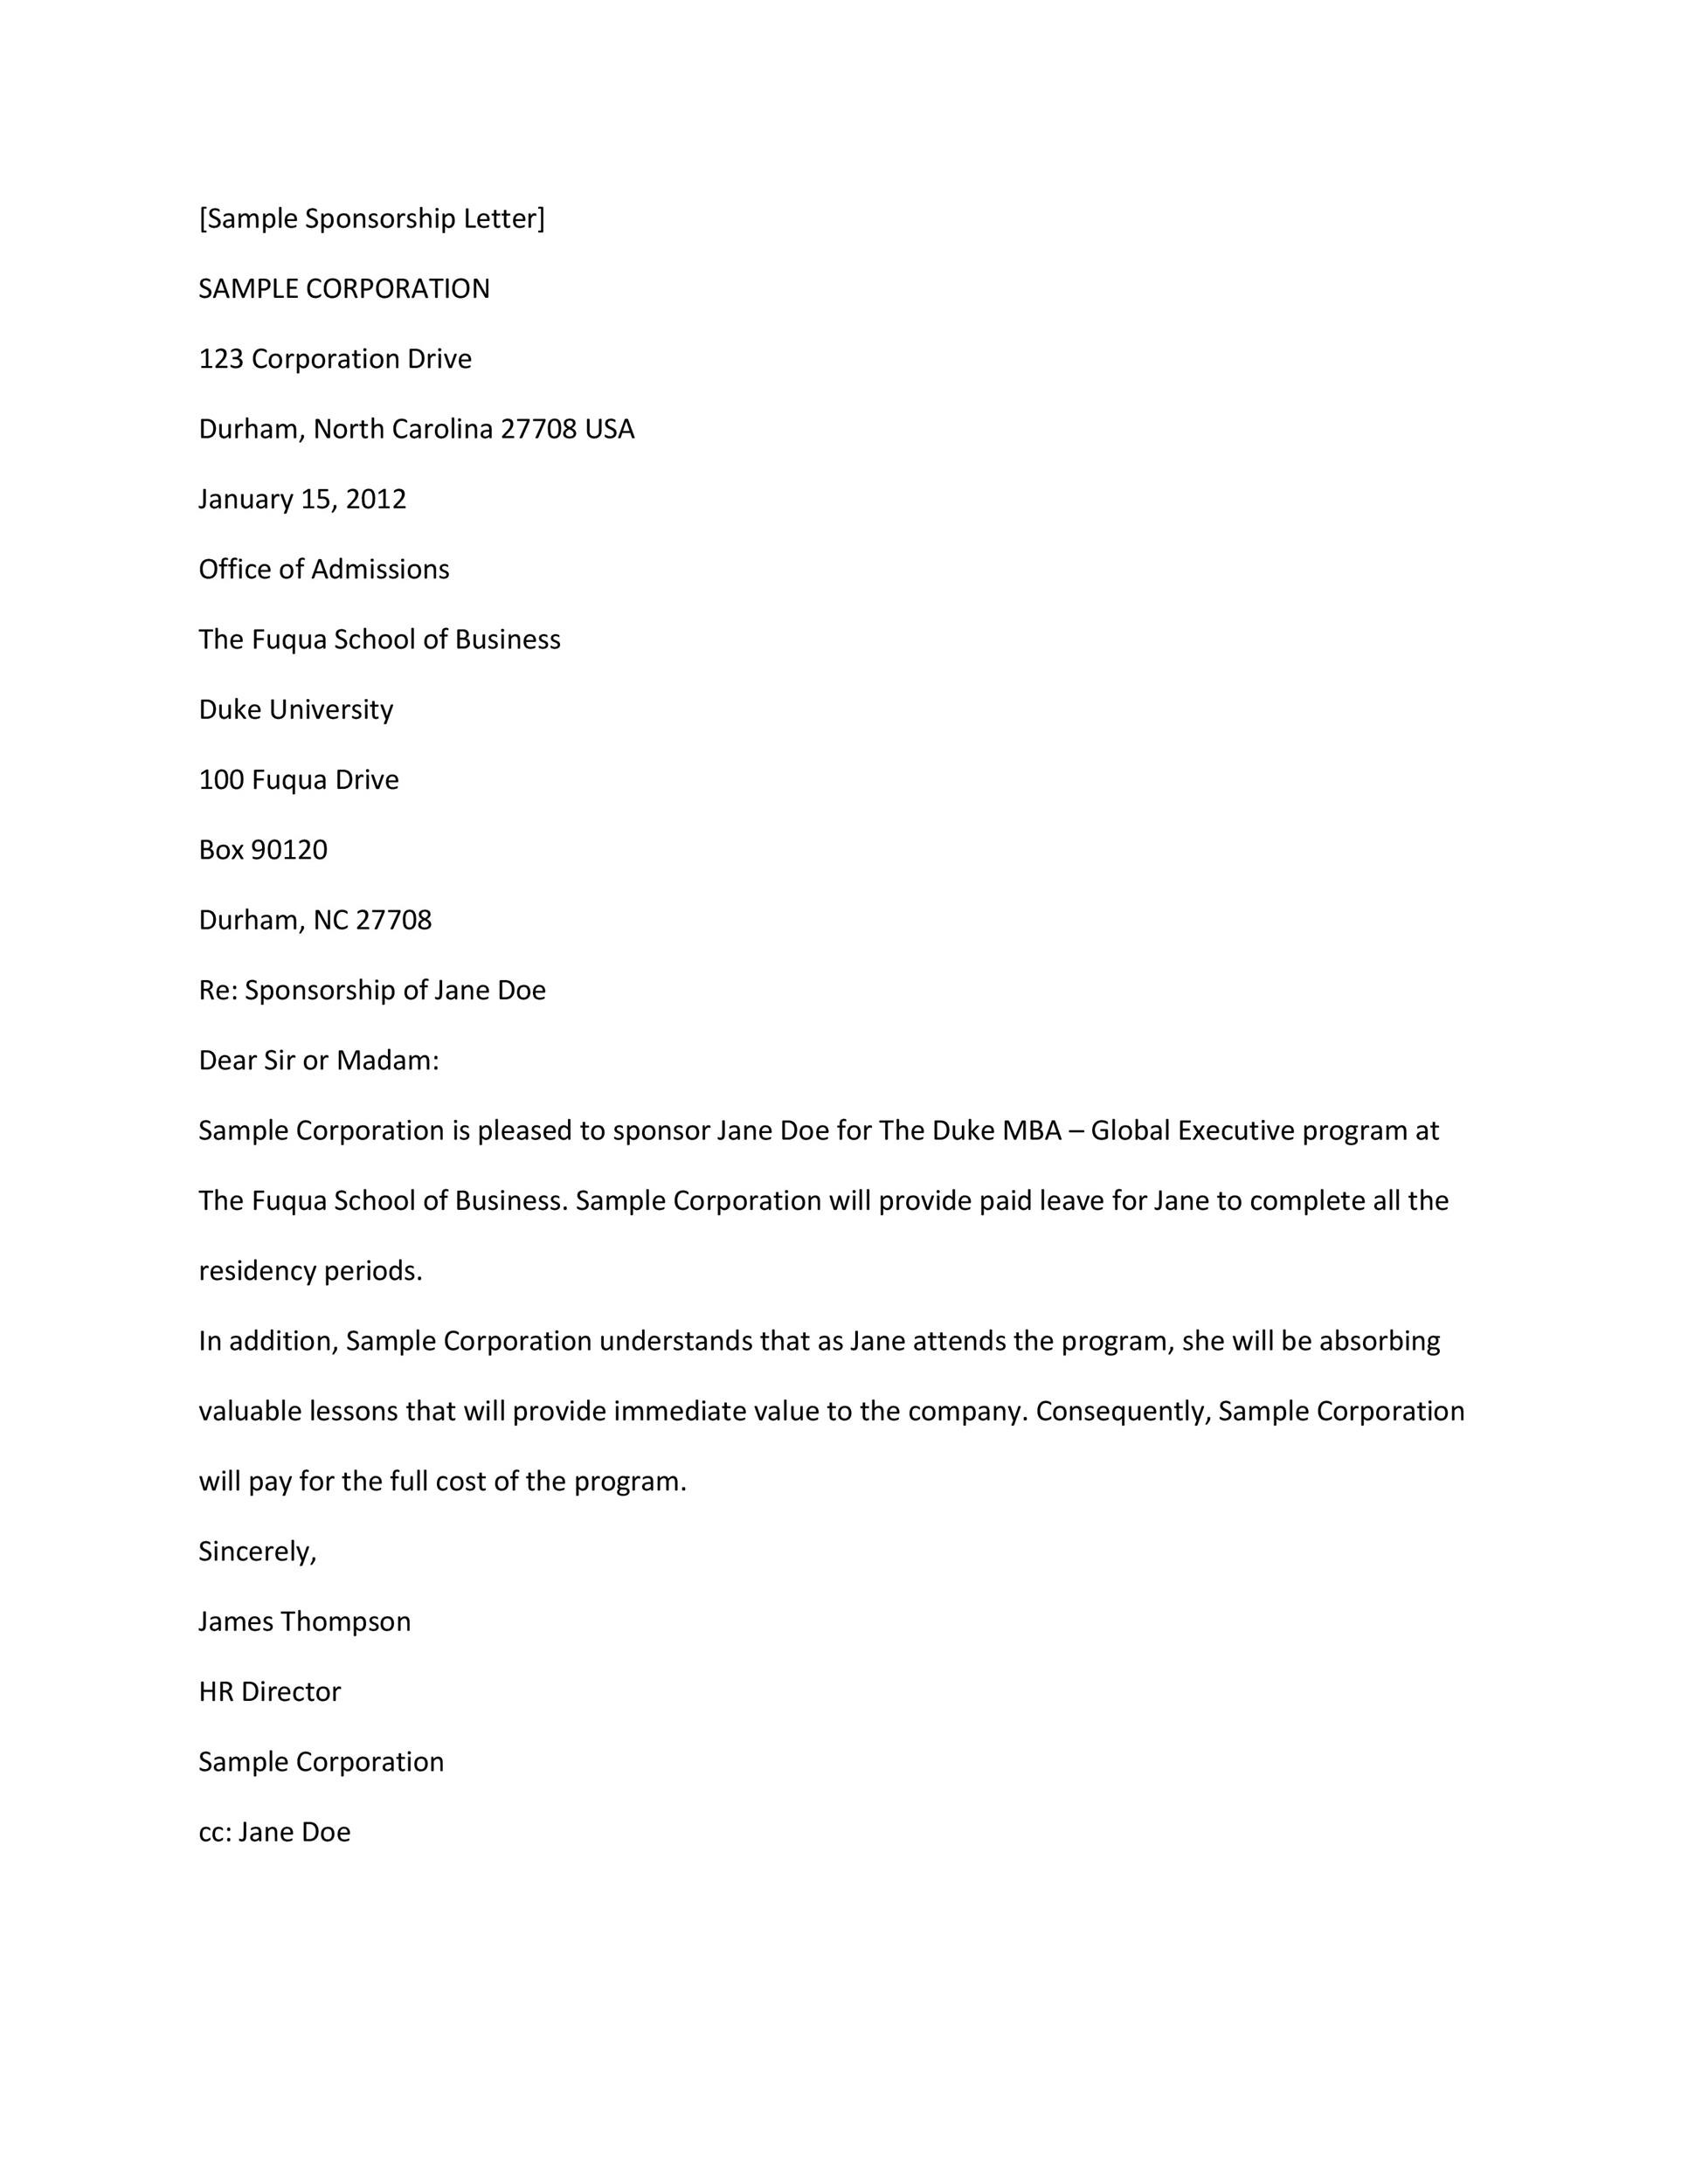 40 sponsorship letter sponsorship proposal templates - Cover Letter Email Example